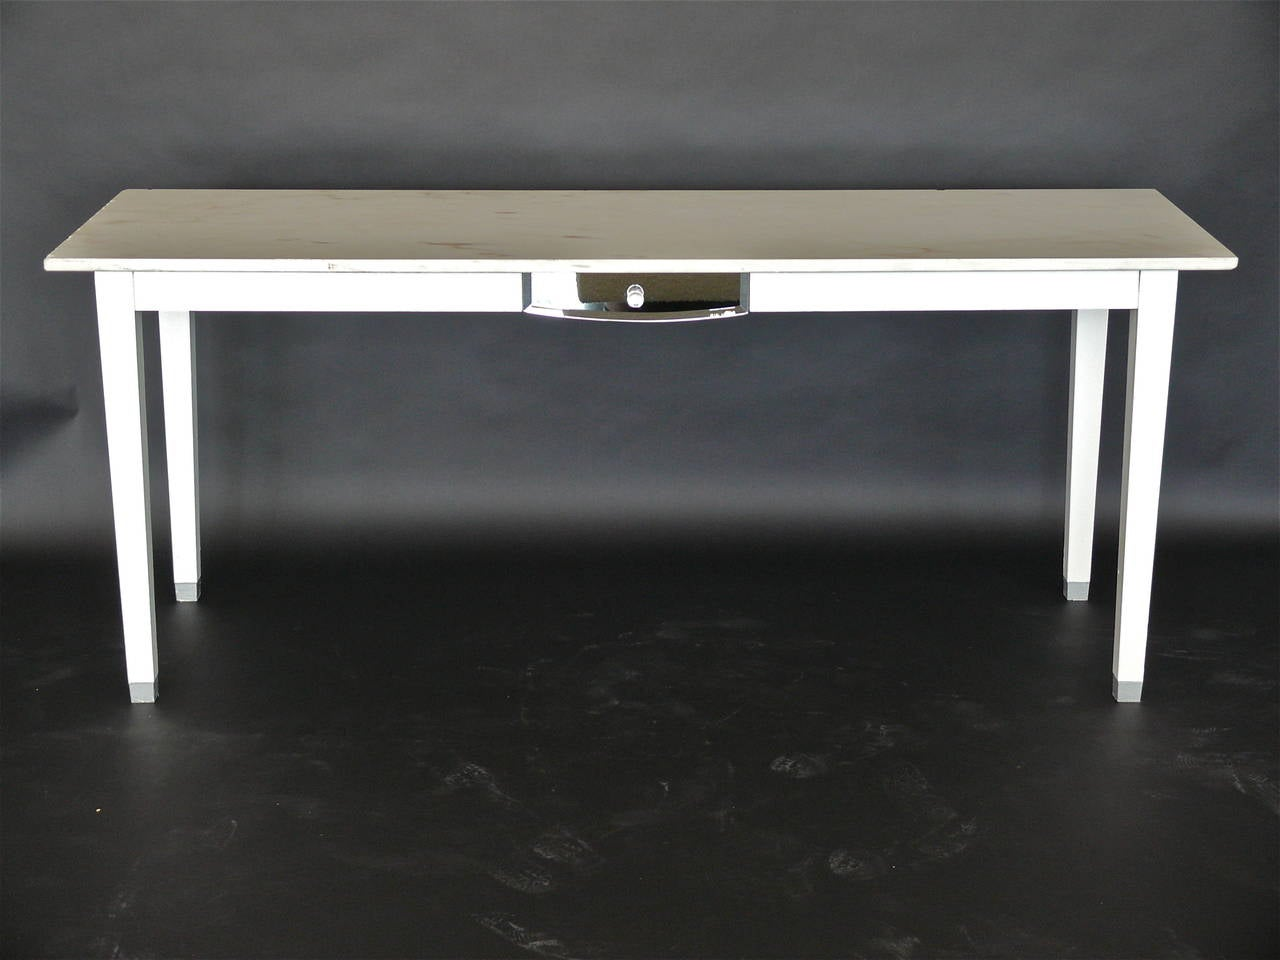 Philippe starck marble console at 1stdibs for Philippe starck work